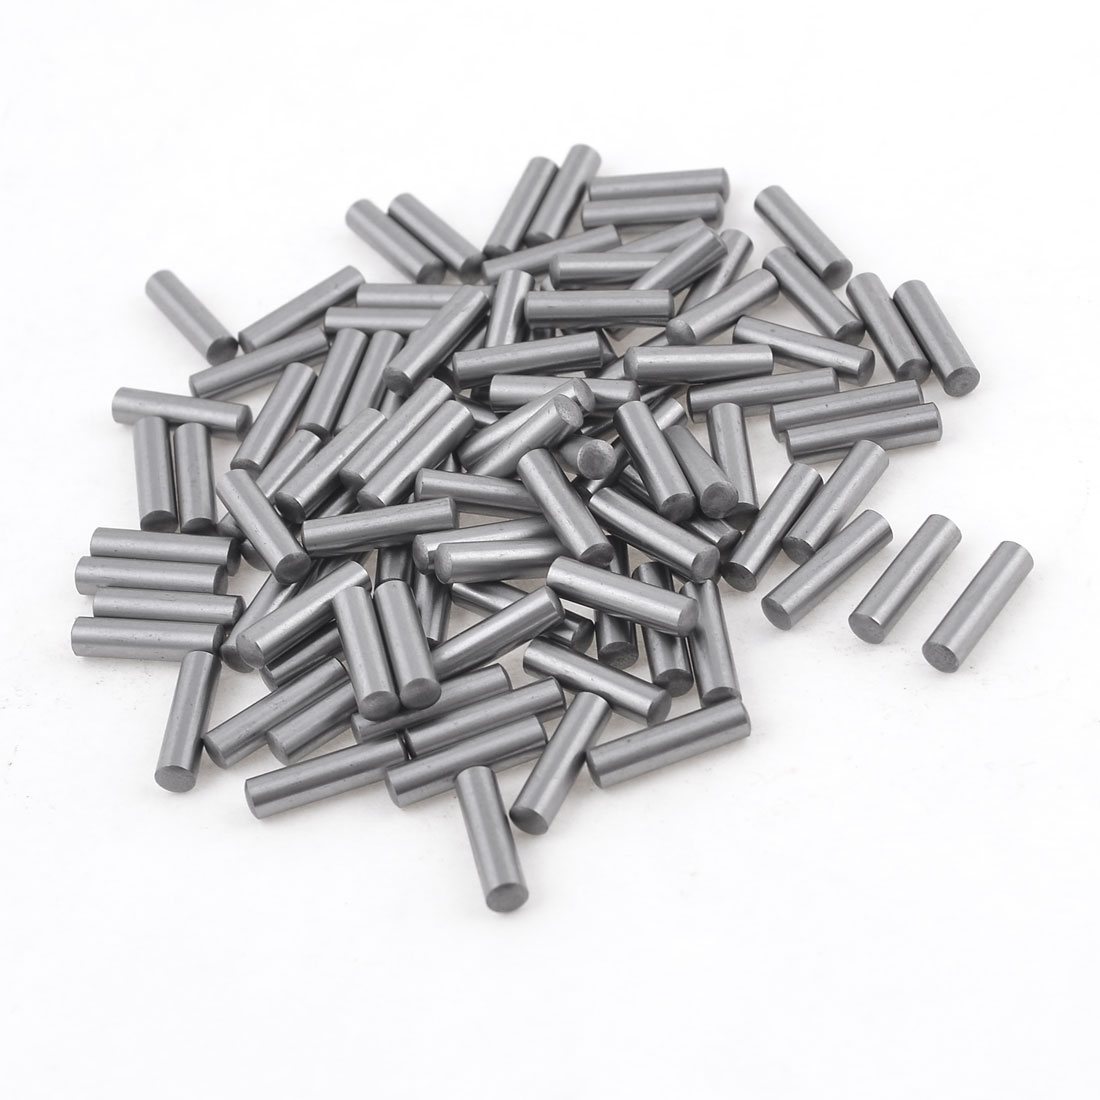 100 Pcs 3.75mm x 15.8mm Parallel Dowel Pins Fasten Elements